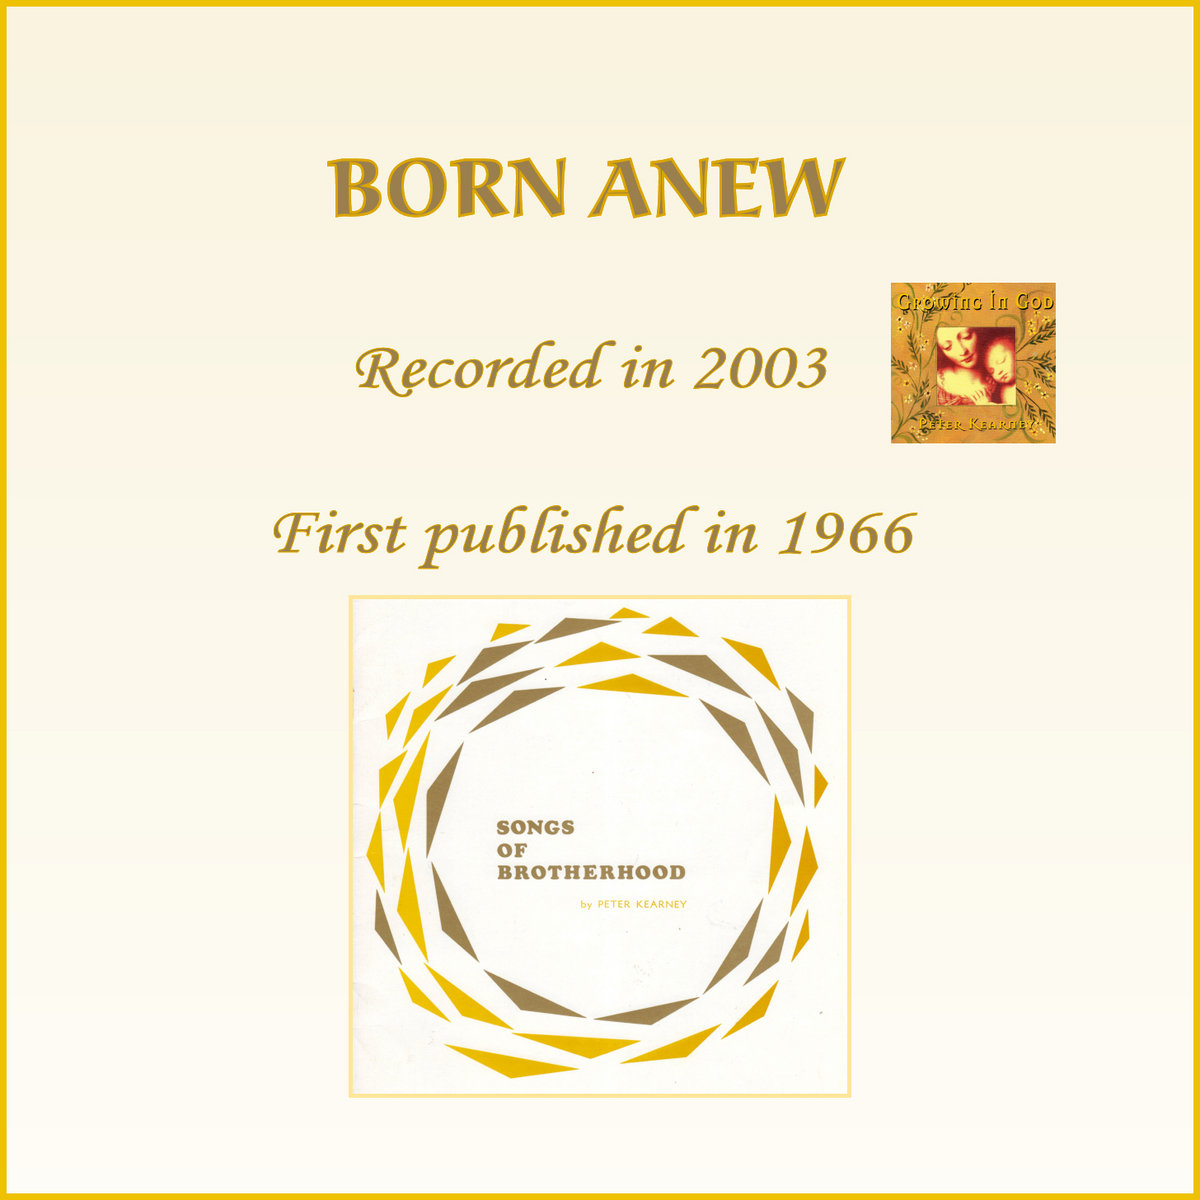 #01 BORN ANEW by Peter Kearney